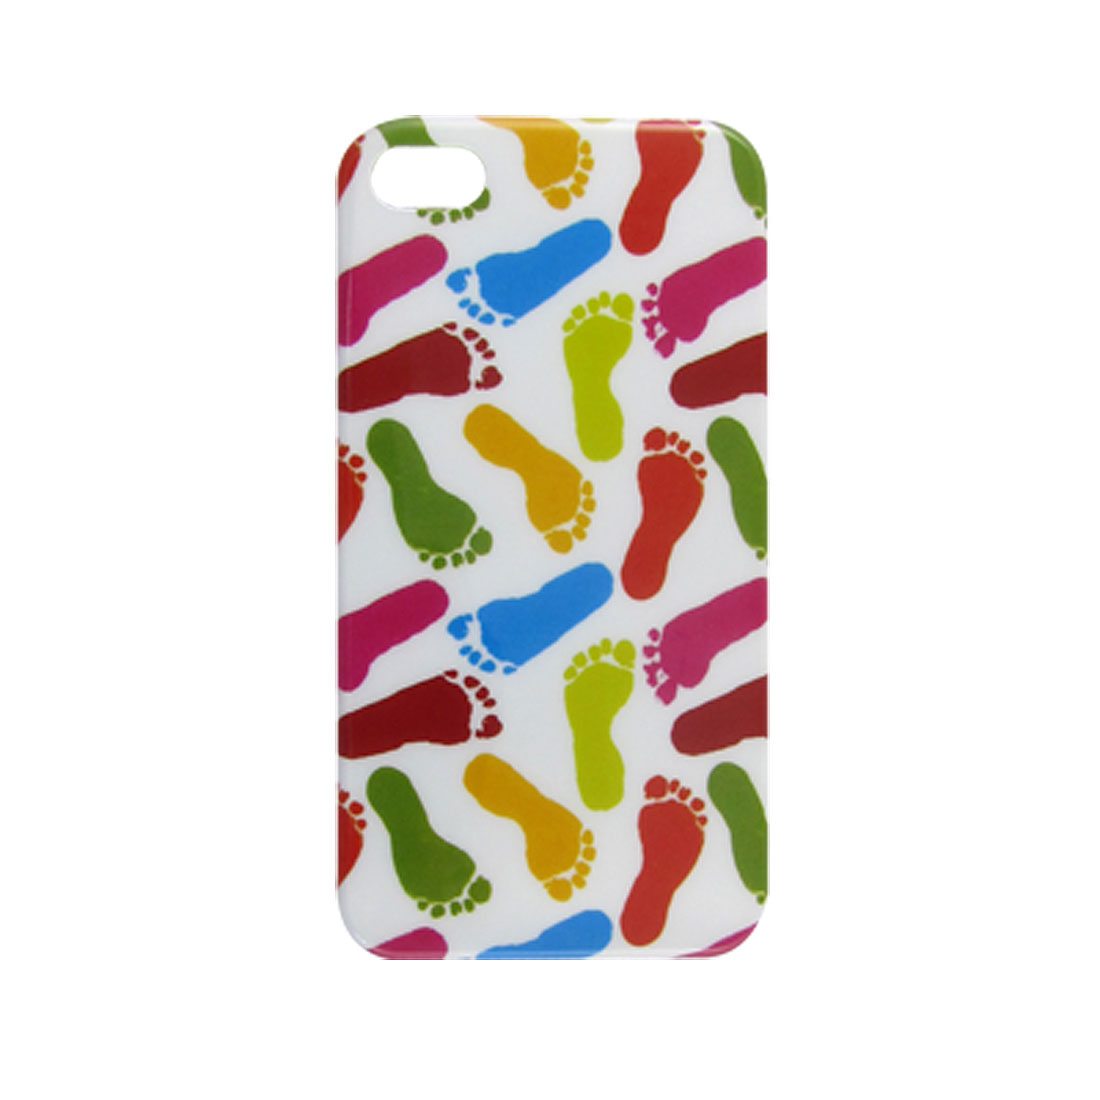 Plastic IMD Pastel Footprint Shield Cover for iPhone 4 4G 4S